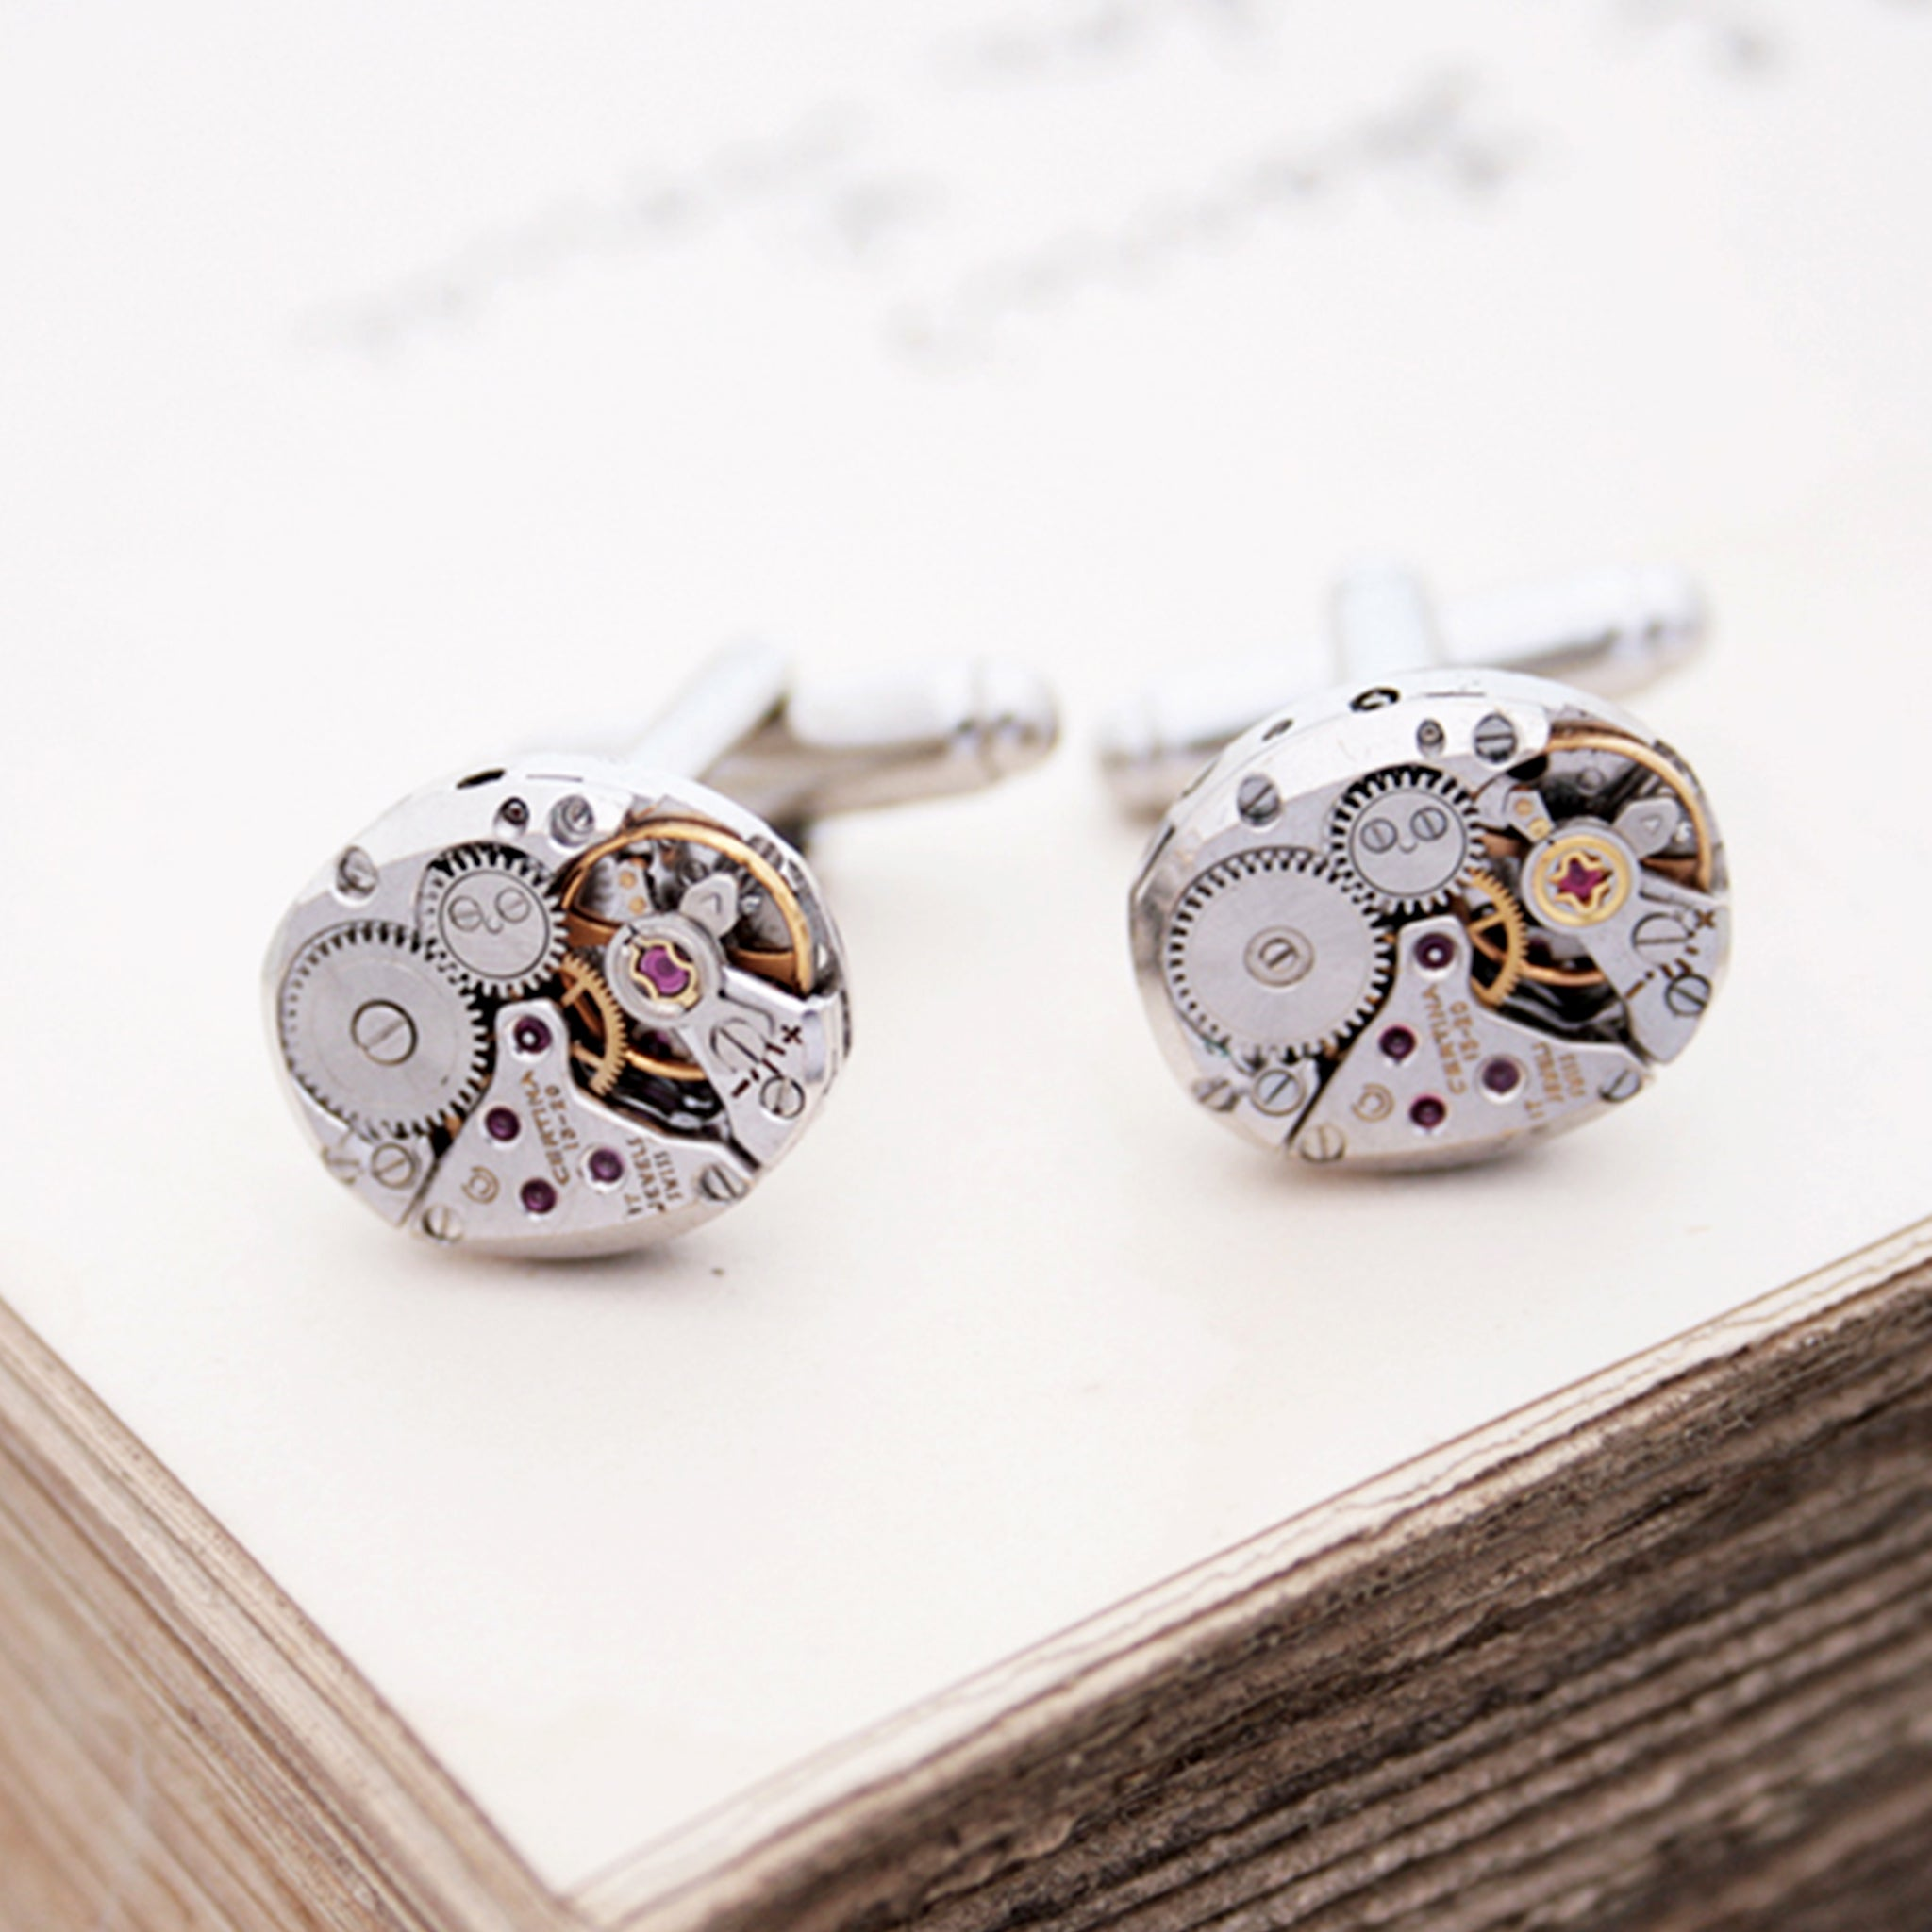 sterling cufflinks made of antique Certina watch movements